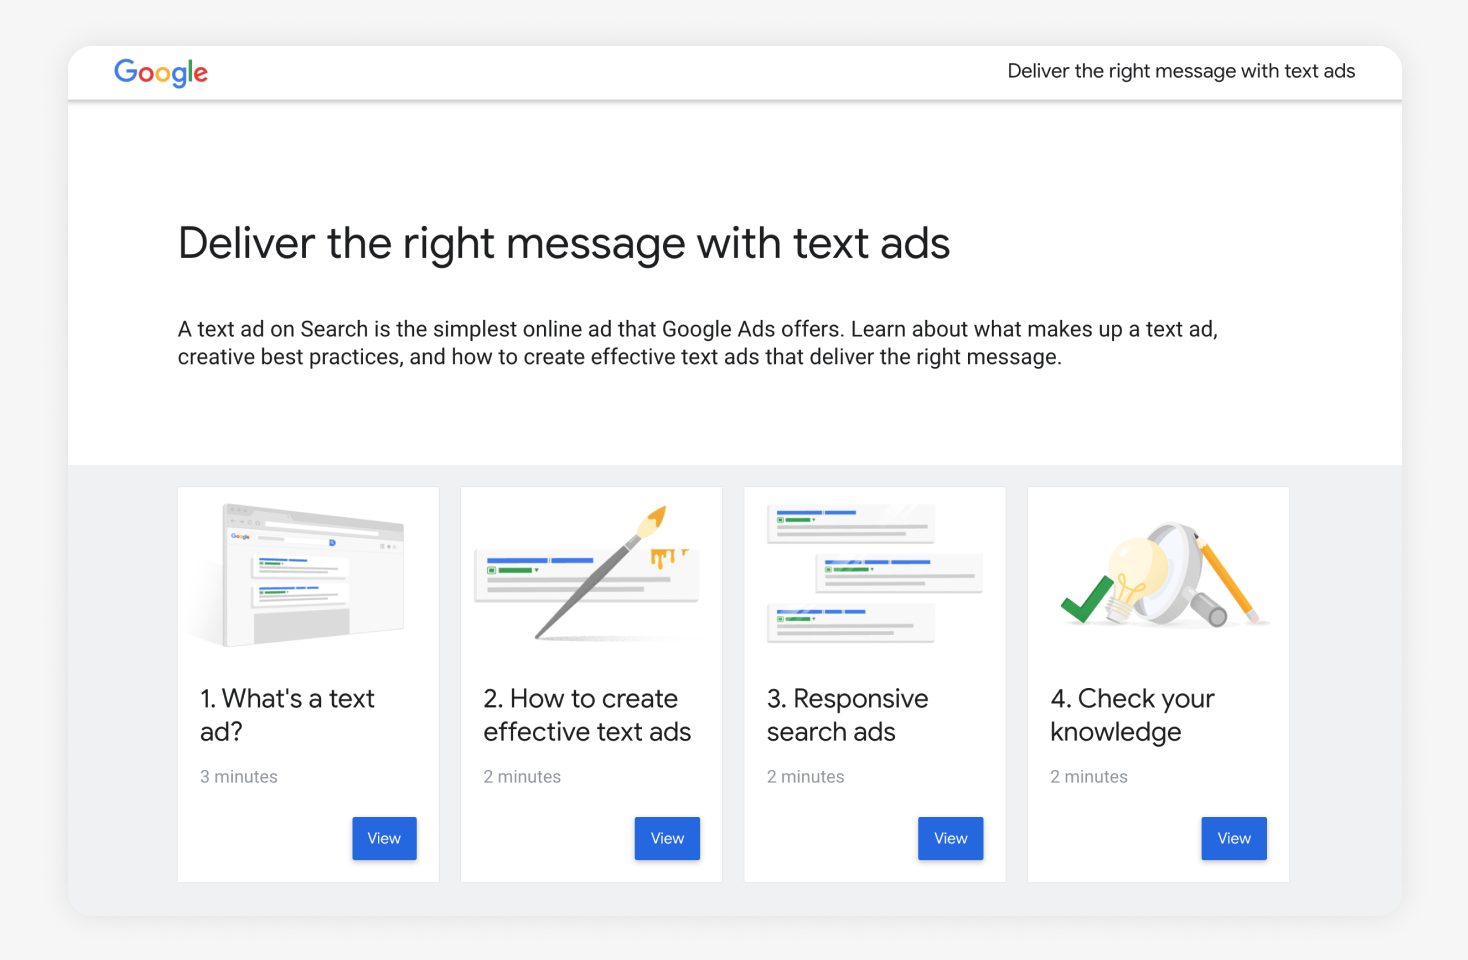 One of the pieces of study material for the Google Ads Search certification